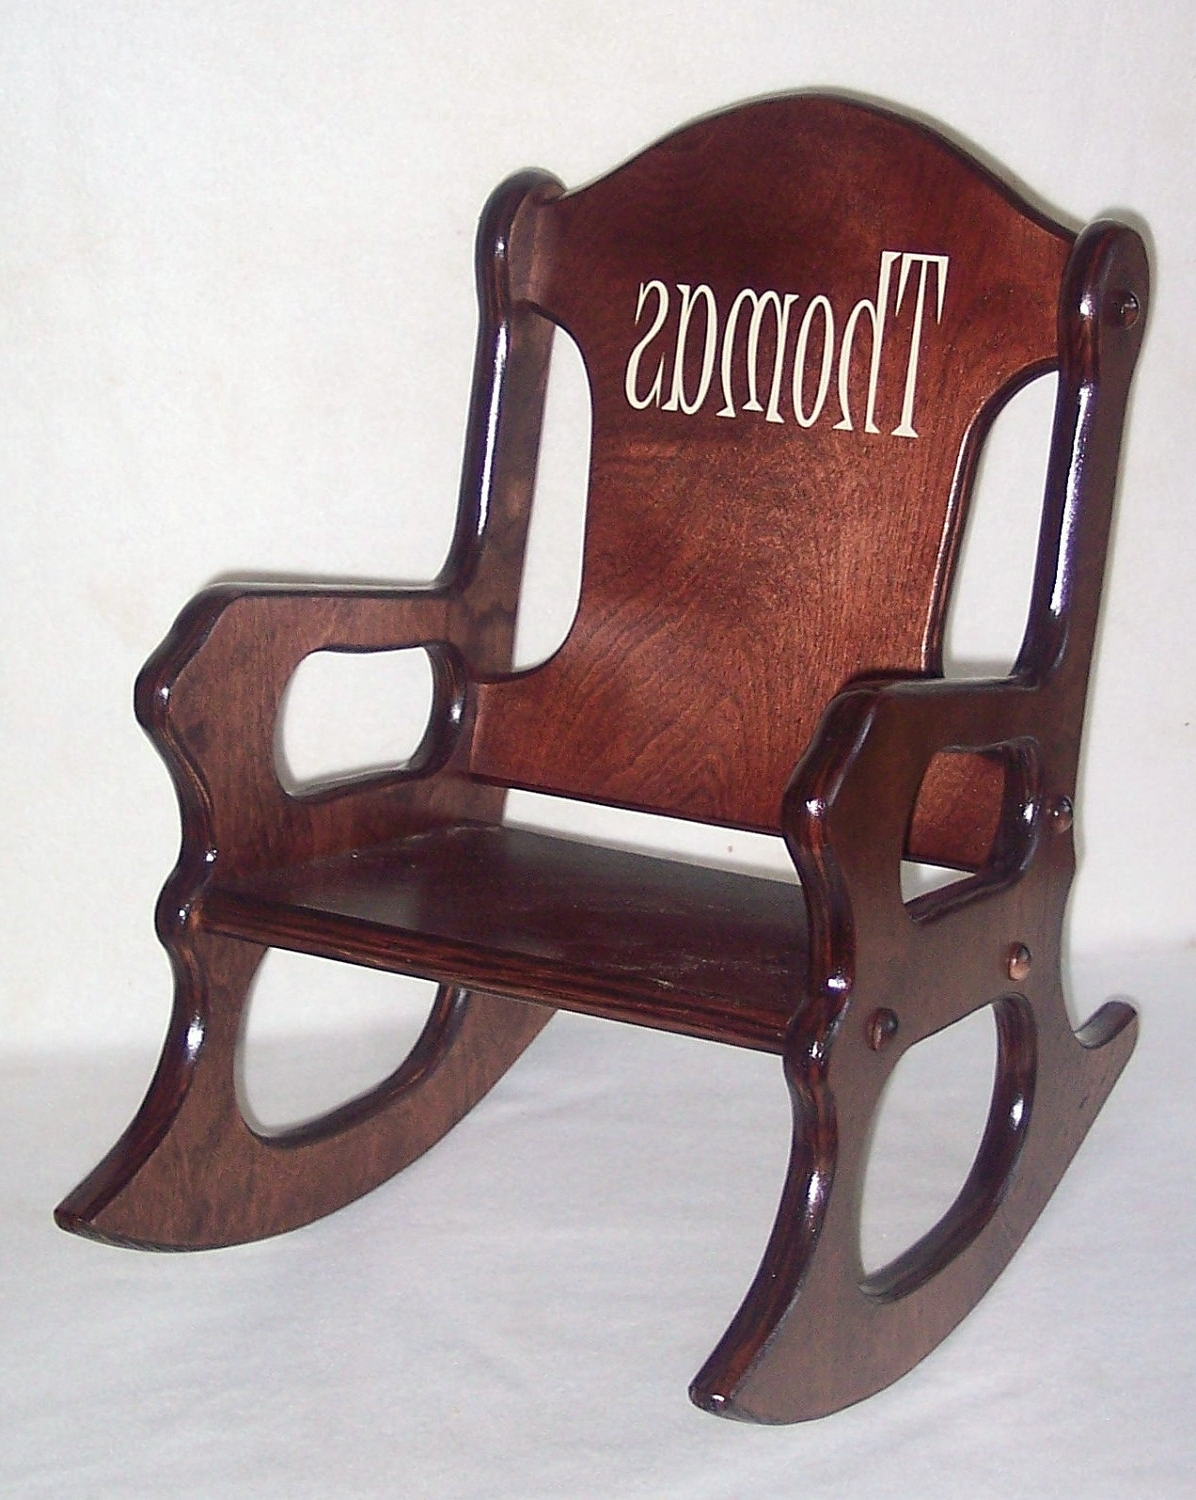 Chaise Rocking Chair Chaise Rocking Chair Best Poang Rocking Chair Rocking Chair